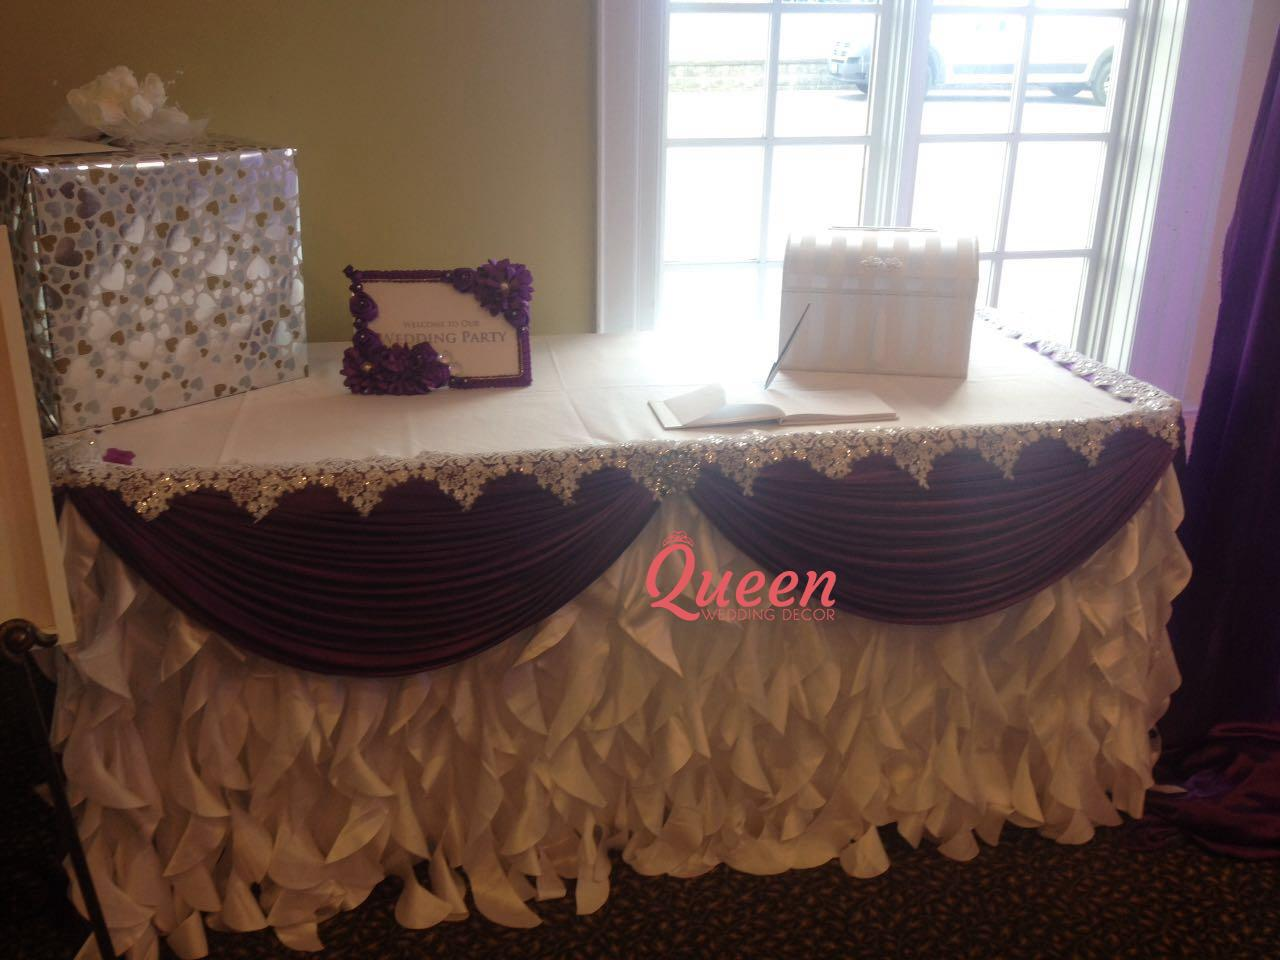 chair covers vaughan crate and barrel folding chairs table decor wedding decorations toronto